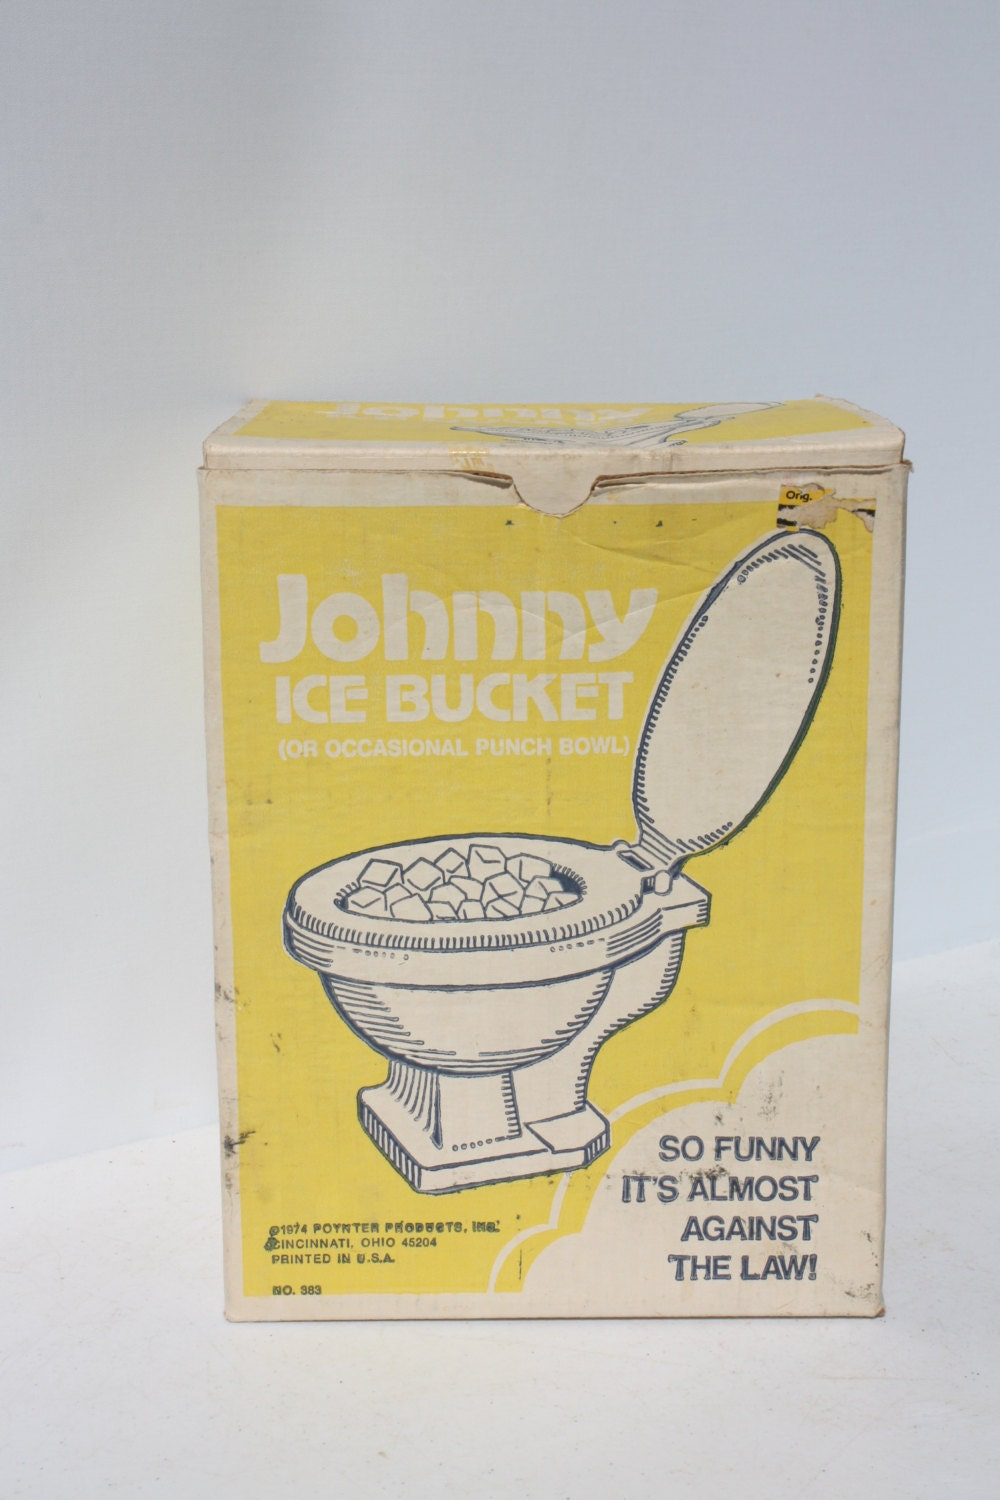 Vintage Ice Bucket Toilet Punch Bowl Party Gag Gift